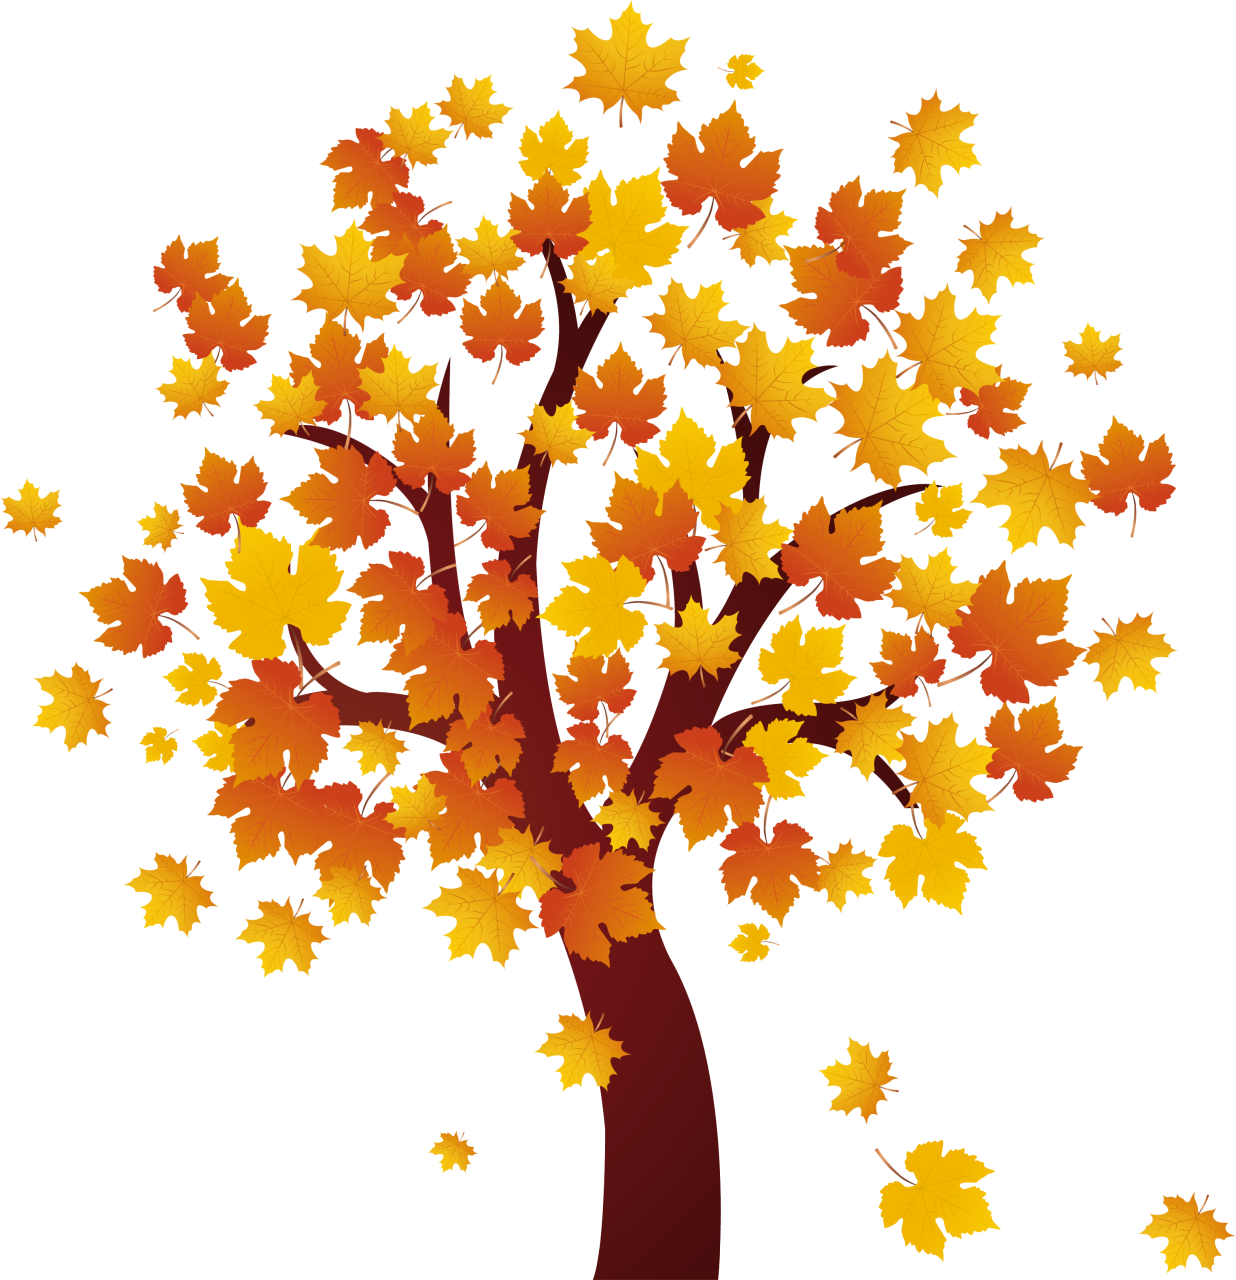 Free Clipart Of Fall Trees. That Others -Free Clipart Of Fall Trees. That Others image has been removed at the  request of its copyright owner. fall tree-15